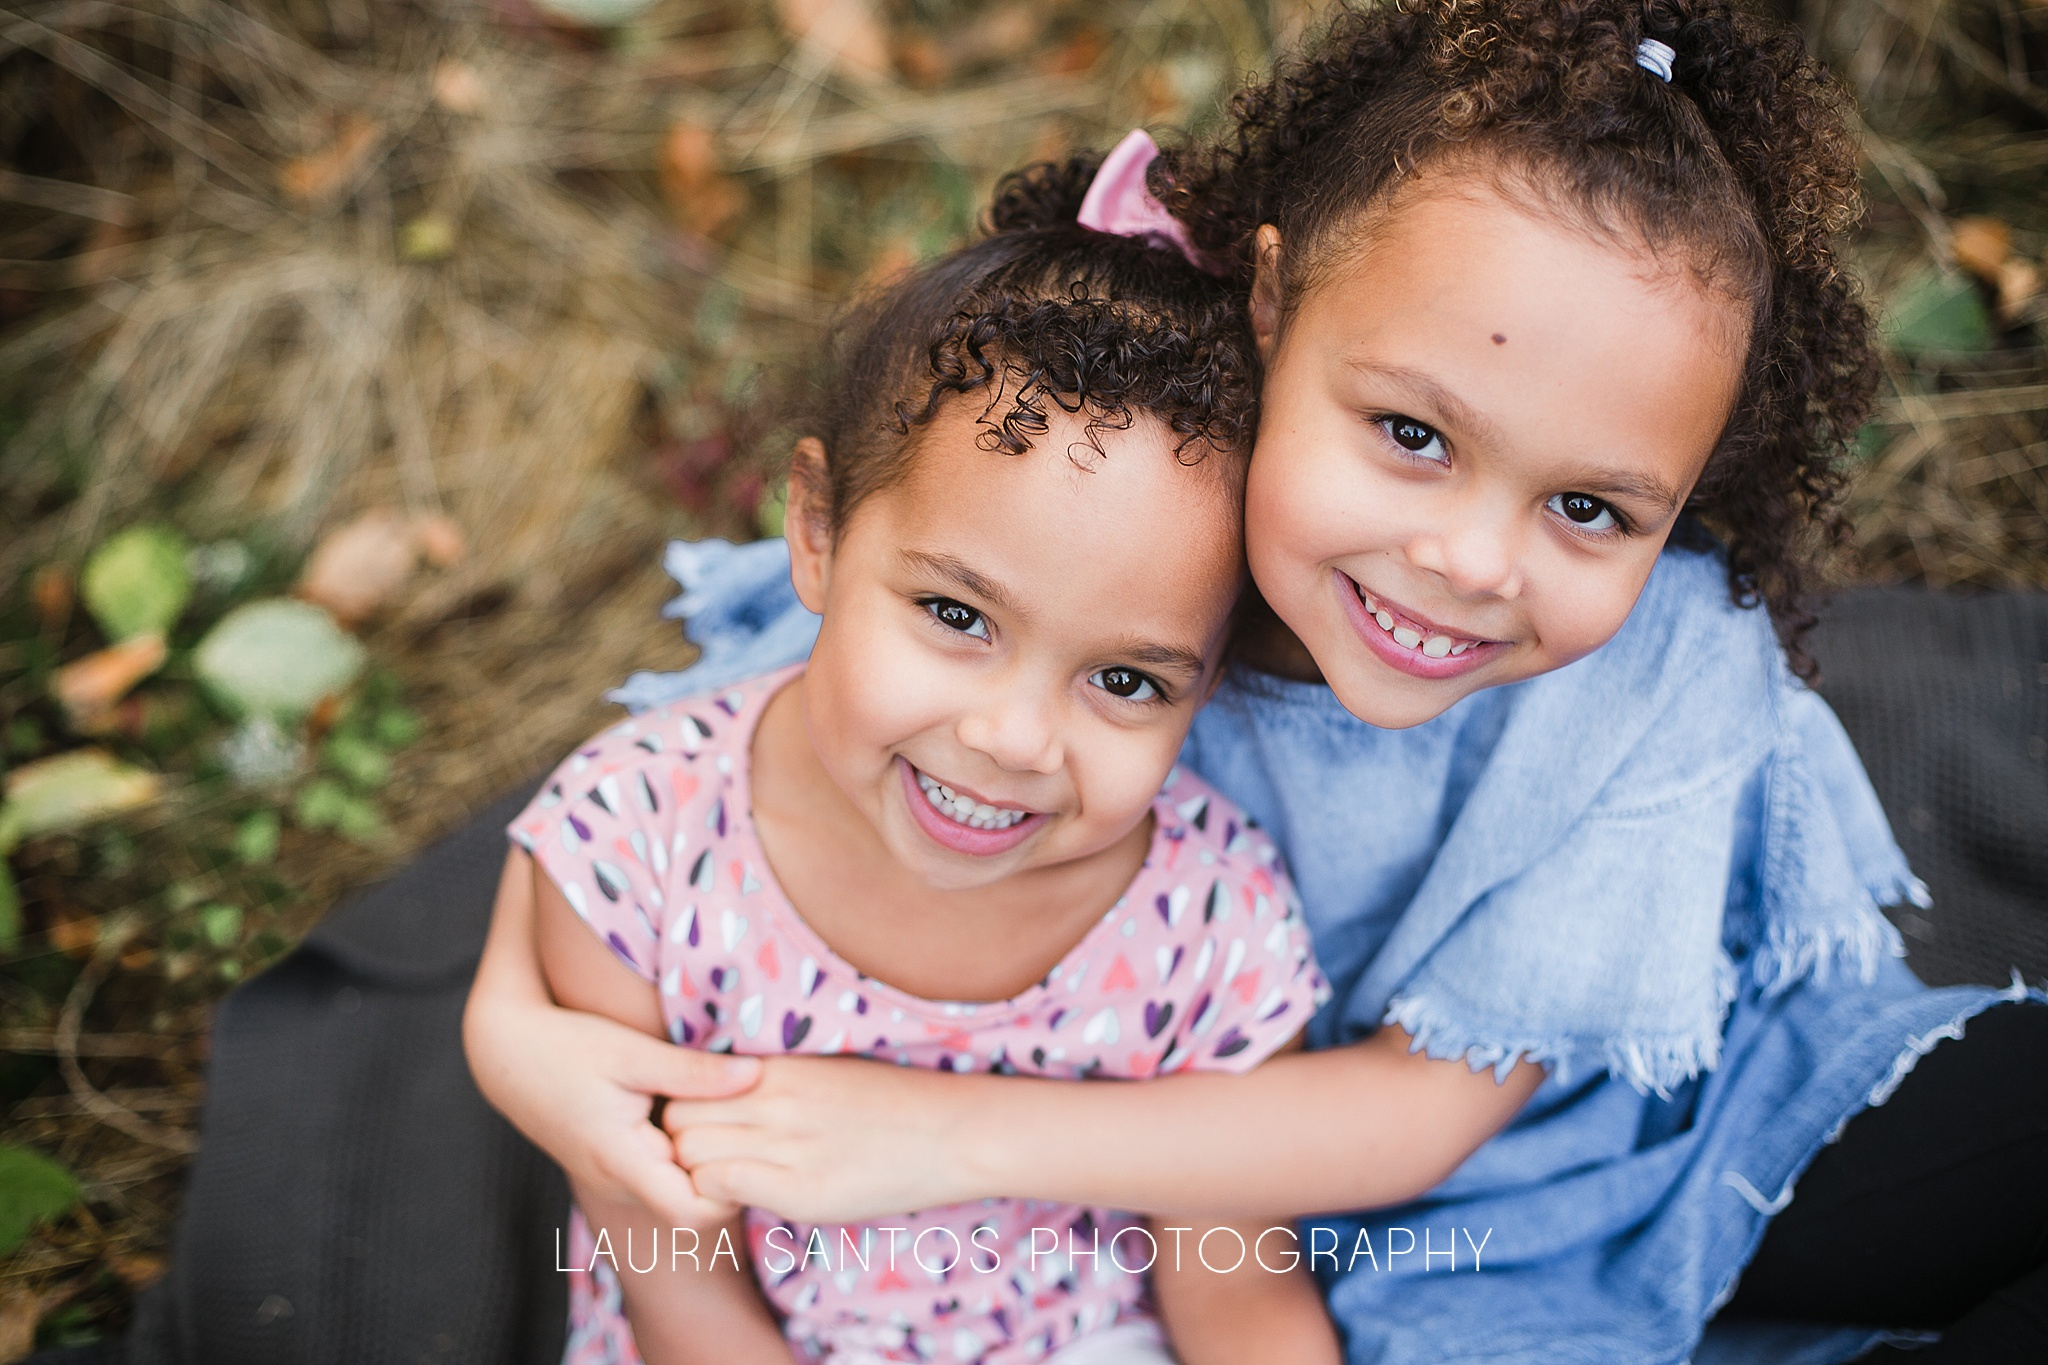 Laura Santos Photography Portland Oregon Family Photographer_0665.jpg